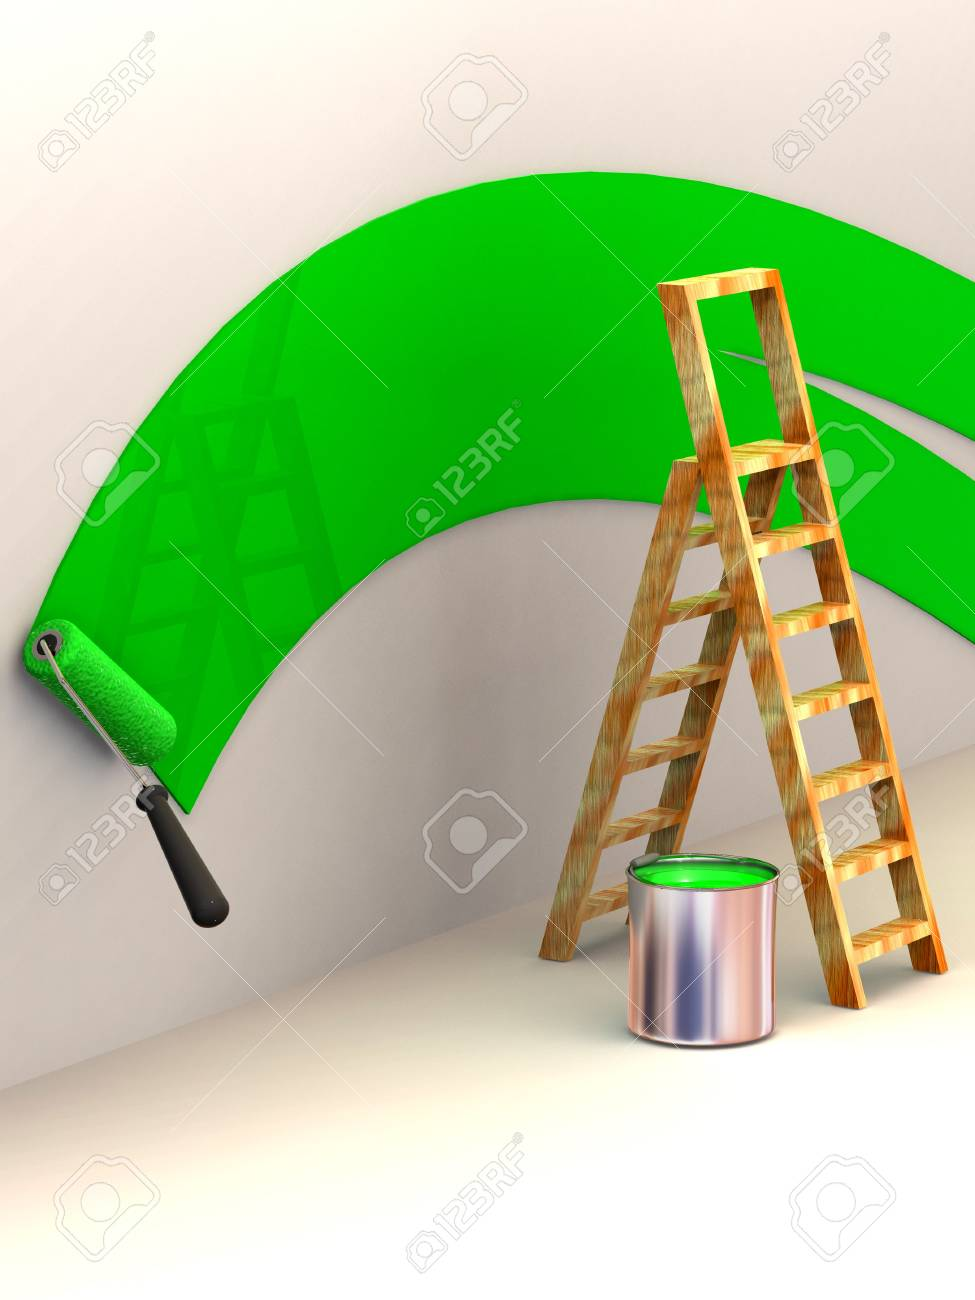 Ladder, roller brush, bucket. Space for text. 3d Stock Photo - 3576461